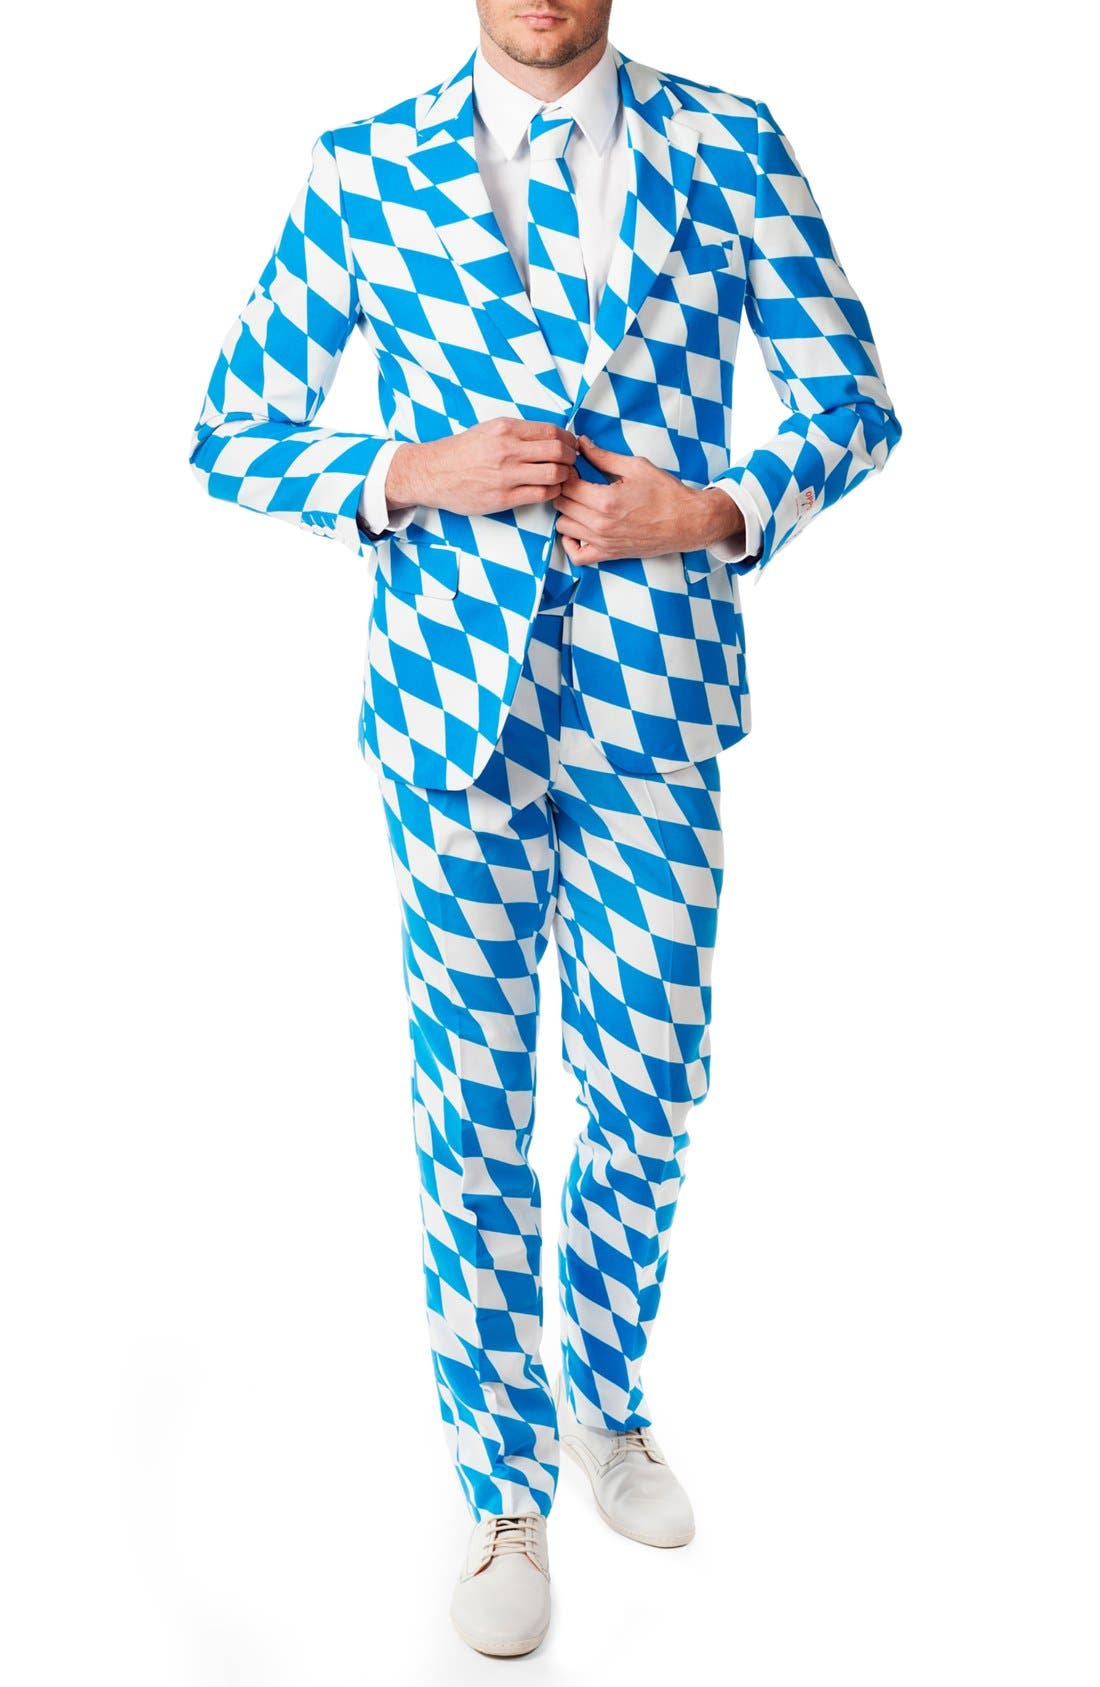 Main Image - OppoSuits 'The Bavarian' Trim Fit Suit with Tie